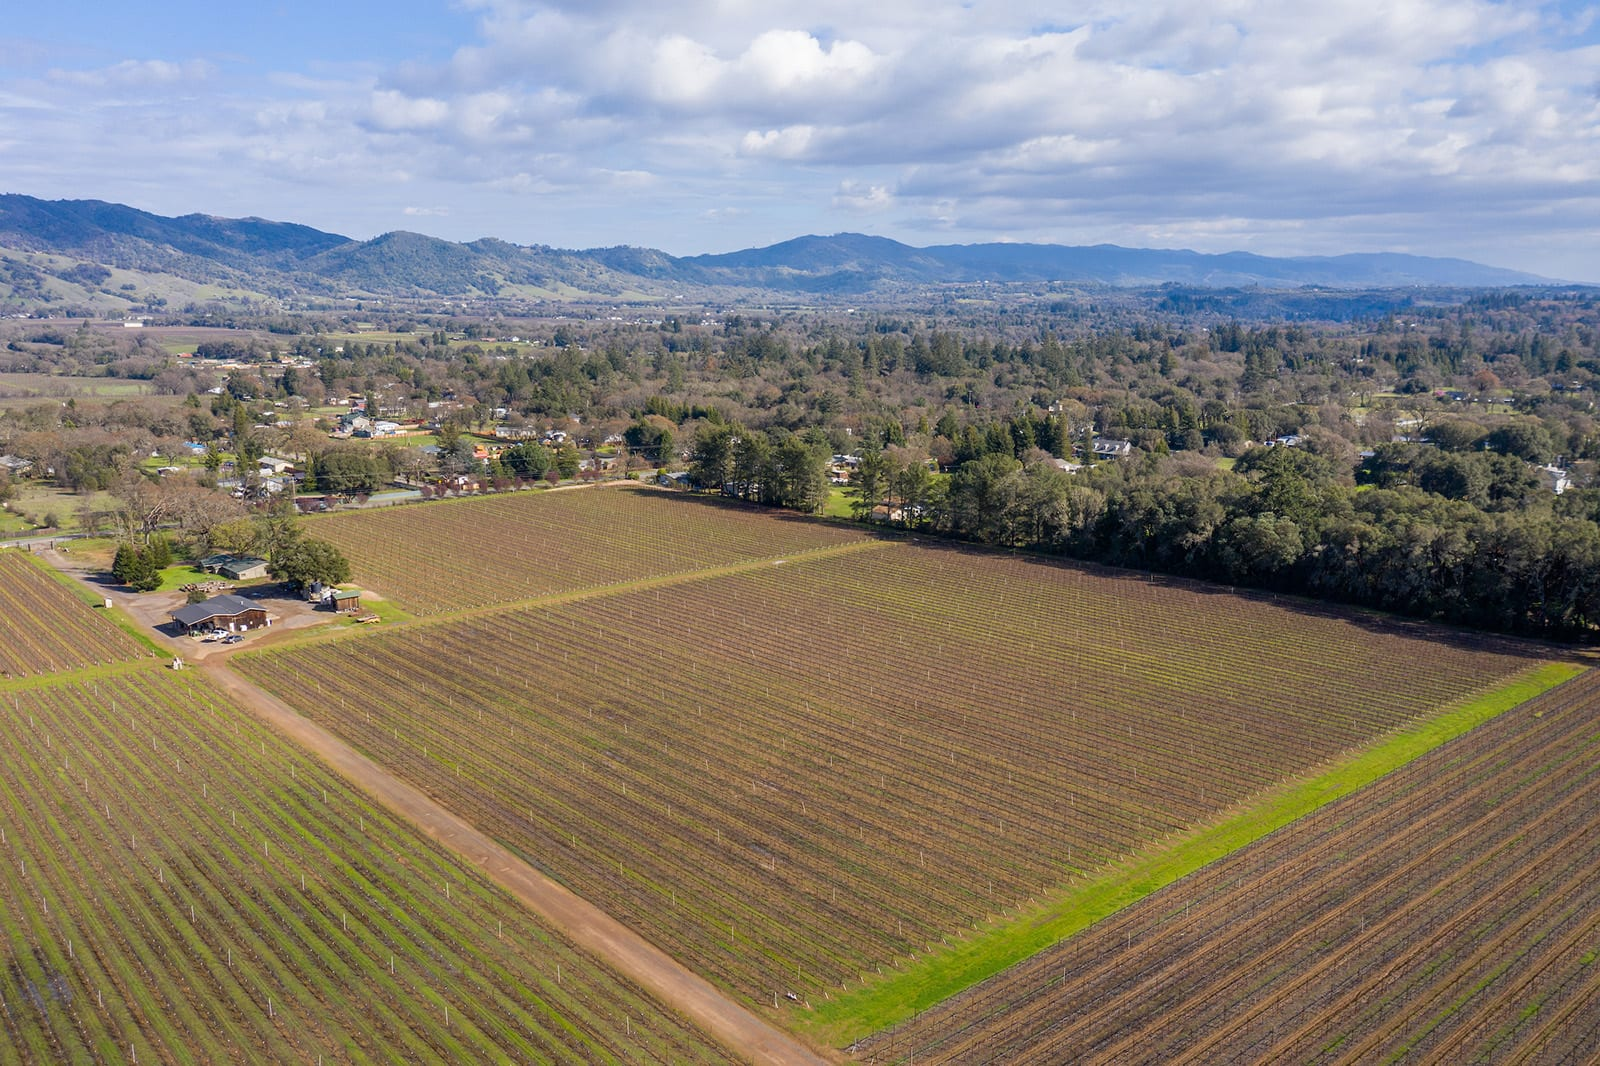 17 Acre Vineyard Redwood Valley